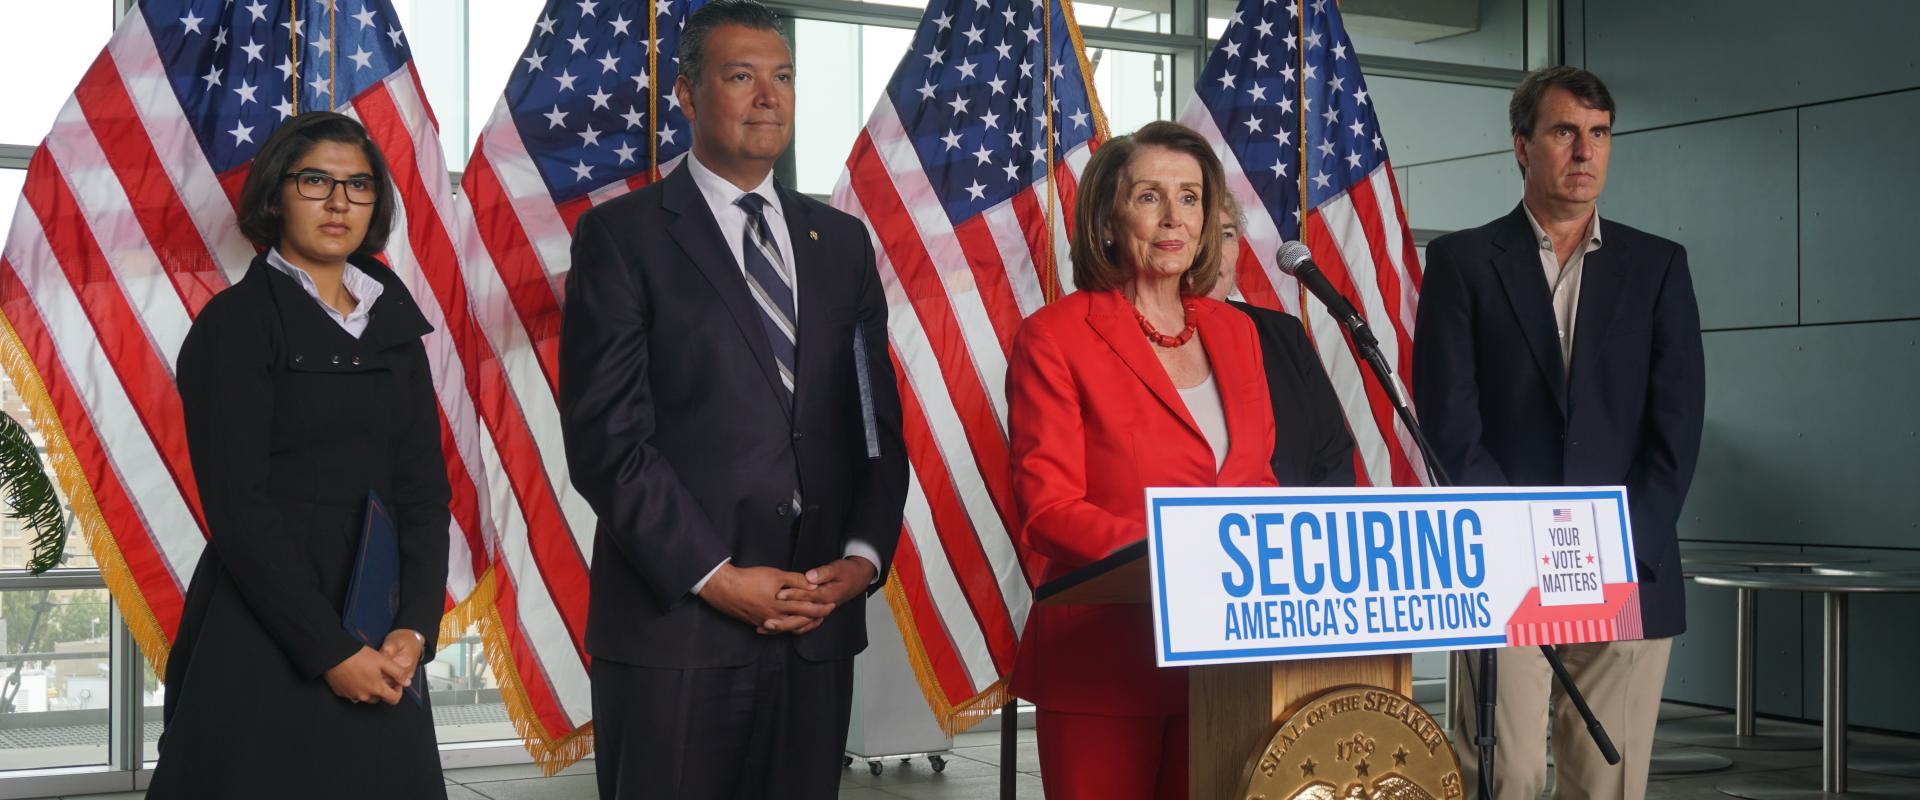 Congresswomen Nancy Pelosi and  Zoe Lofgren, California Secretary of State Alex Padilla, and election security advocates hold a press conference at the San Francisco Federal Building stressing the importance of secure and safe elections; highlighting Cong